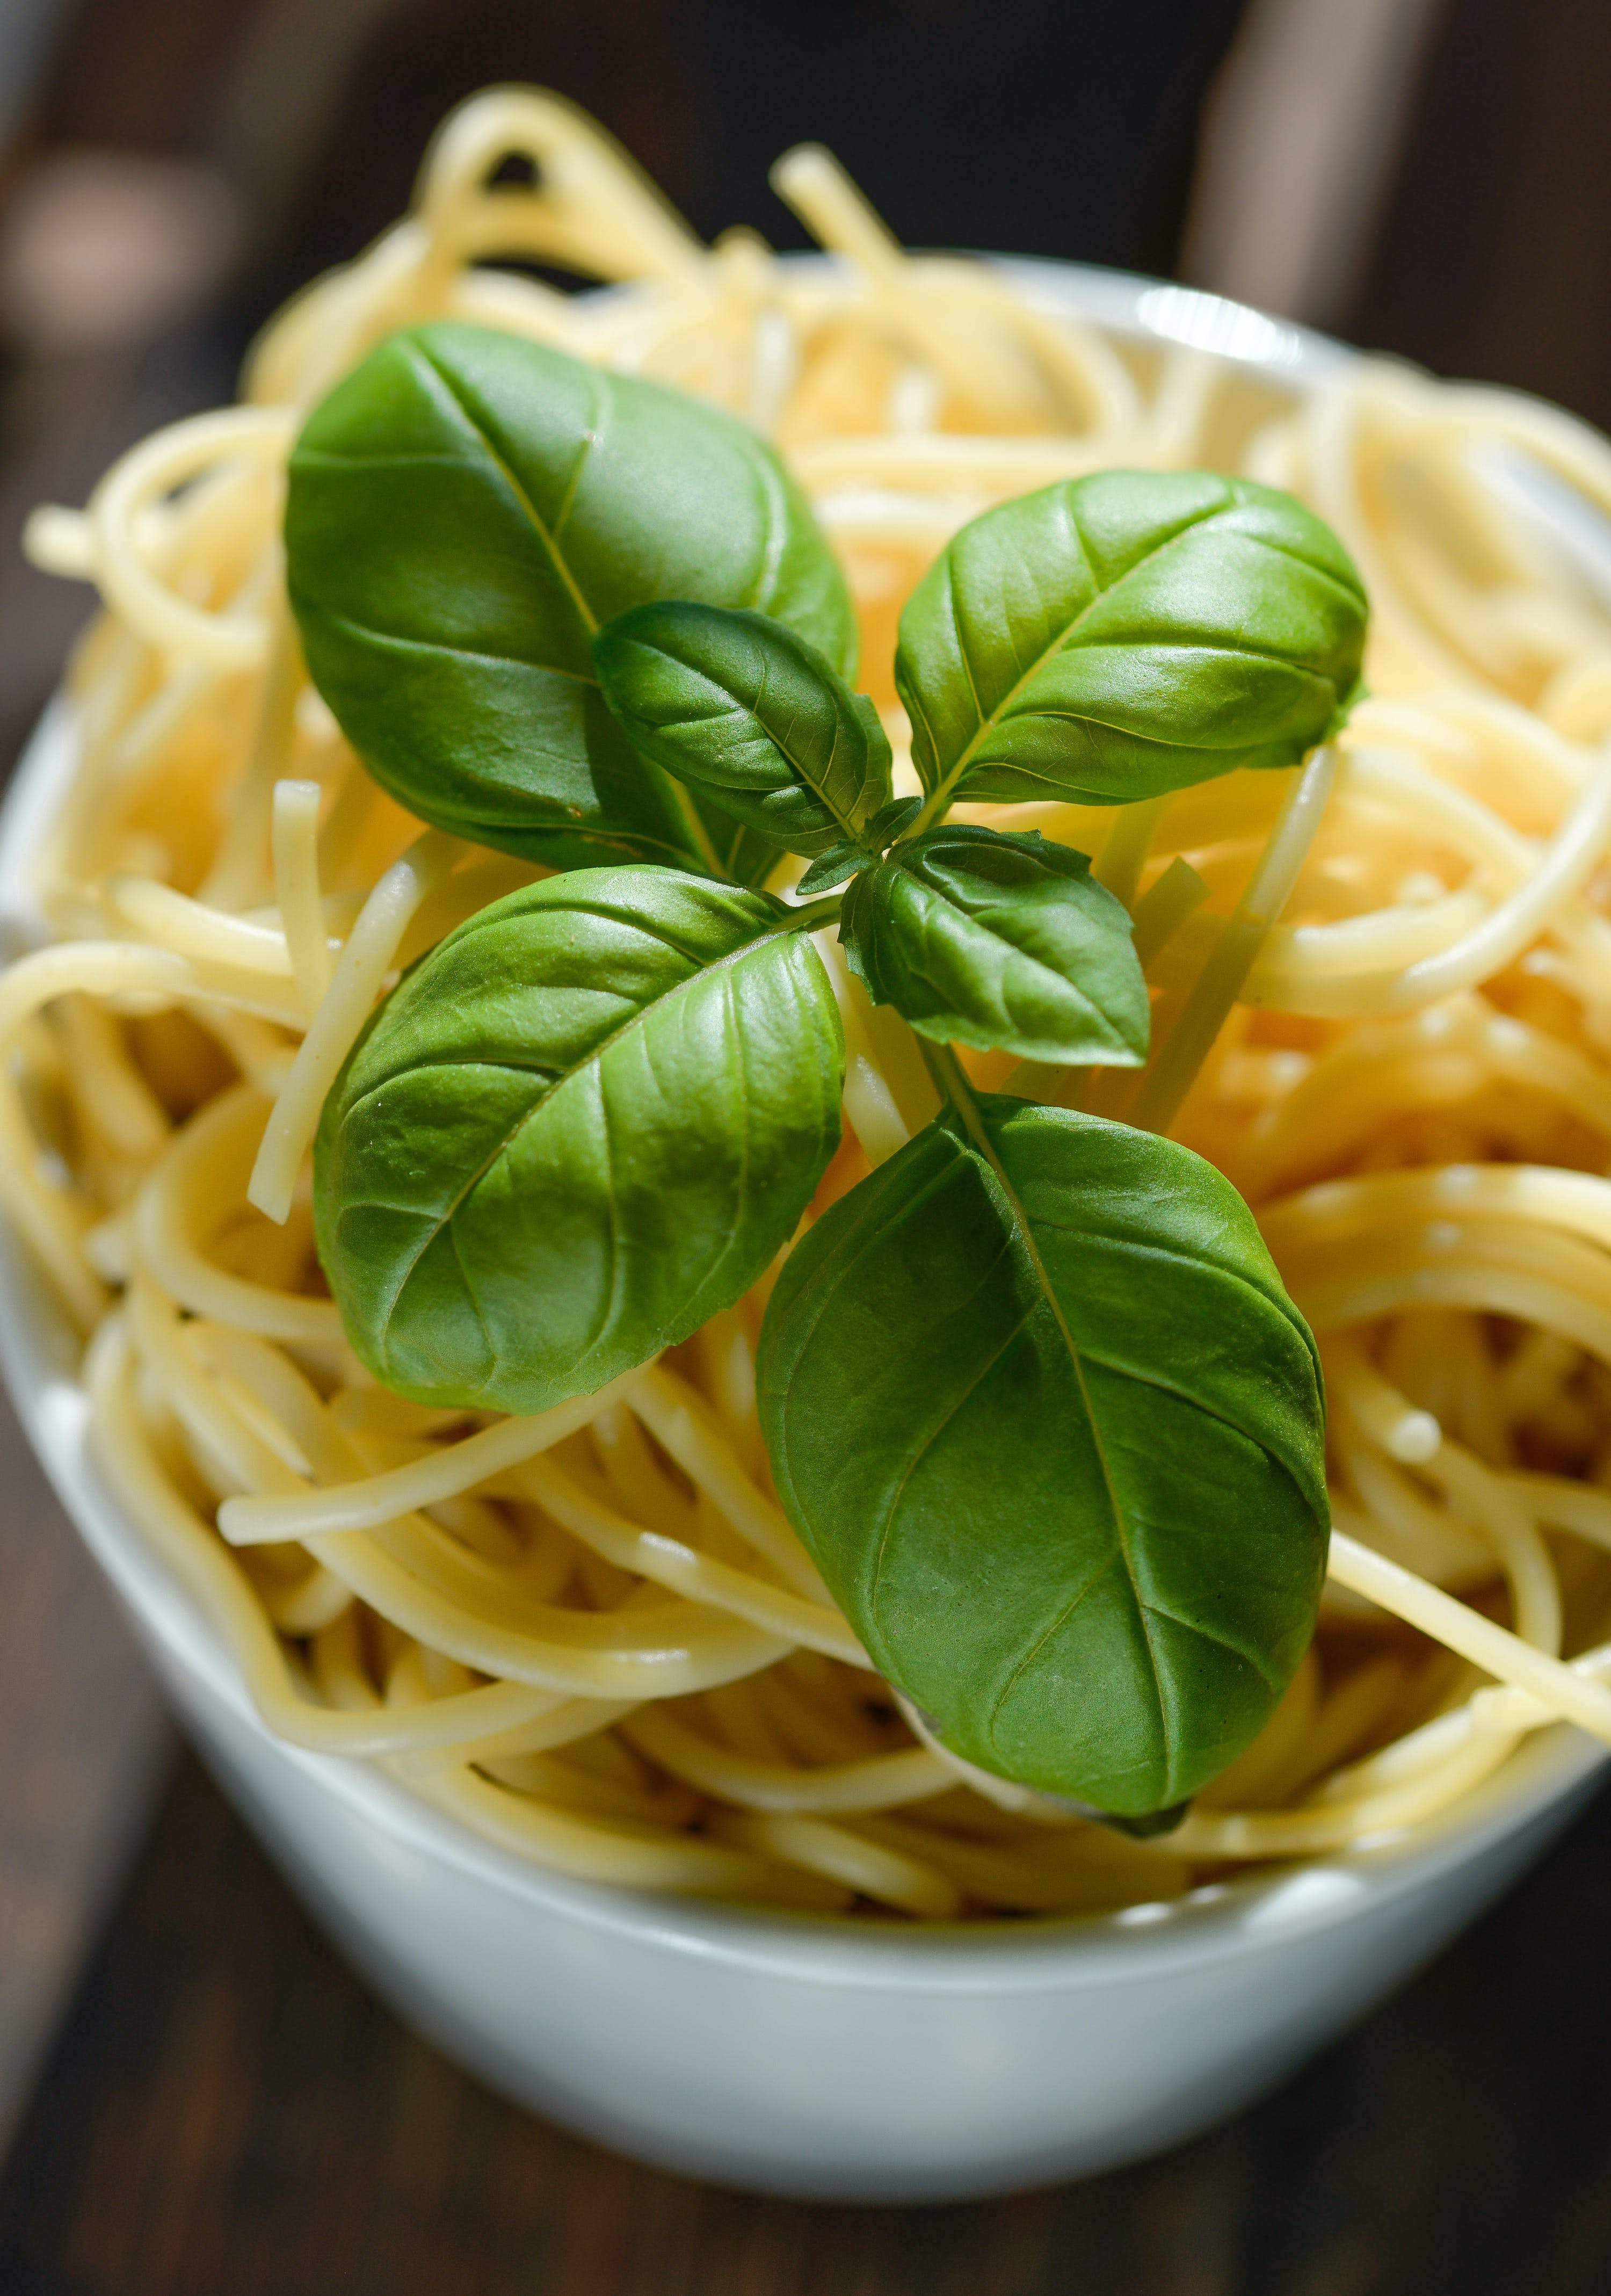 Green Basil Leaves on Top of Pasta